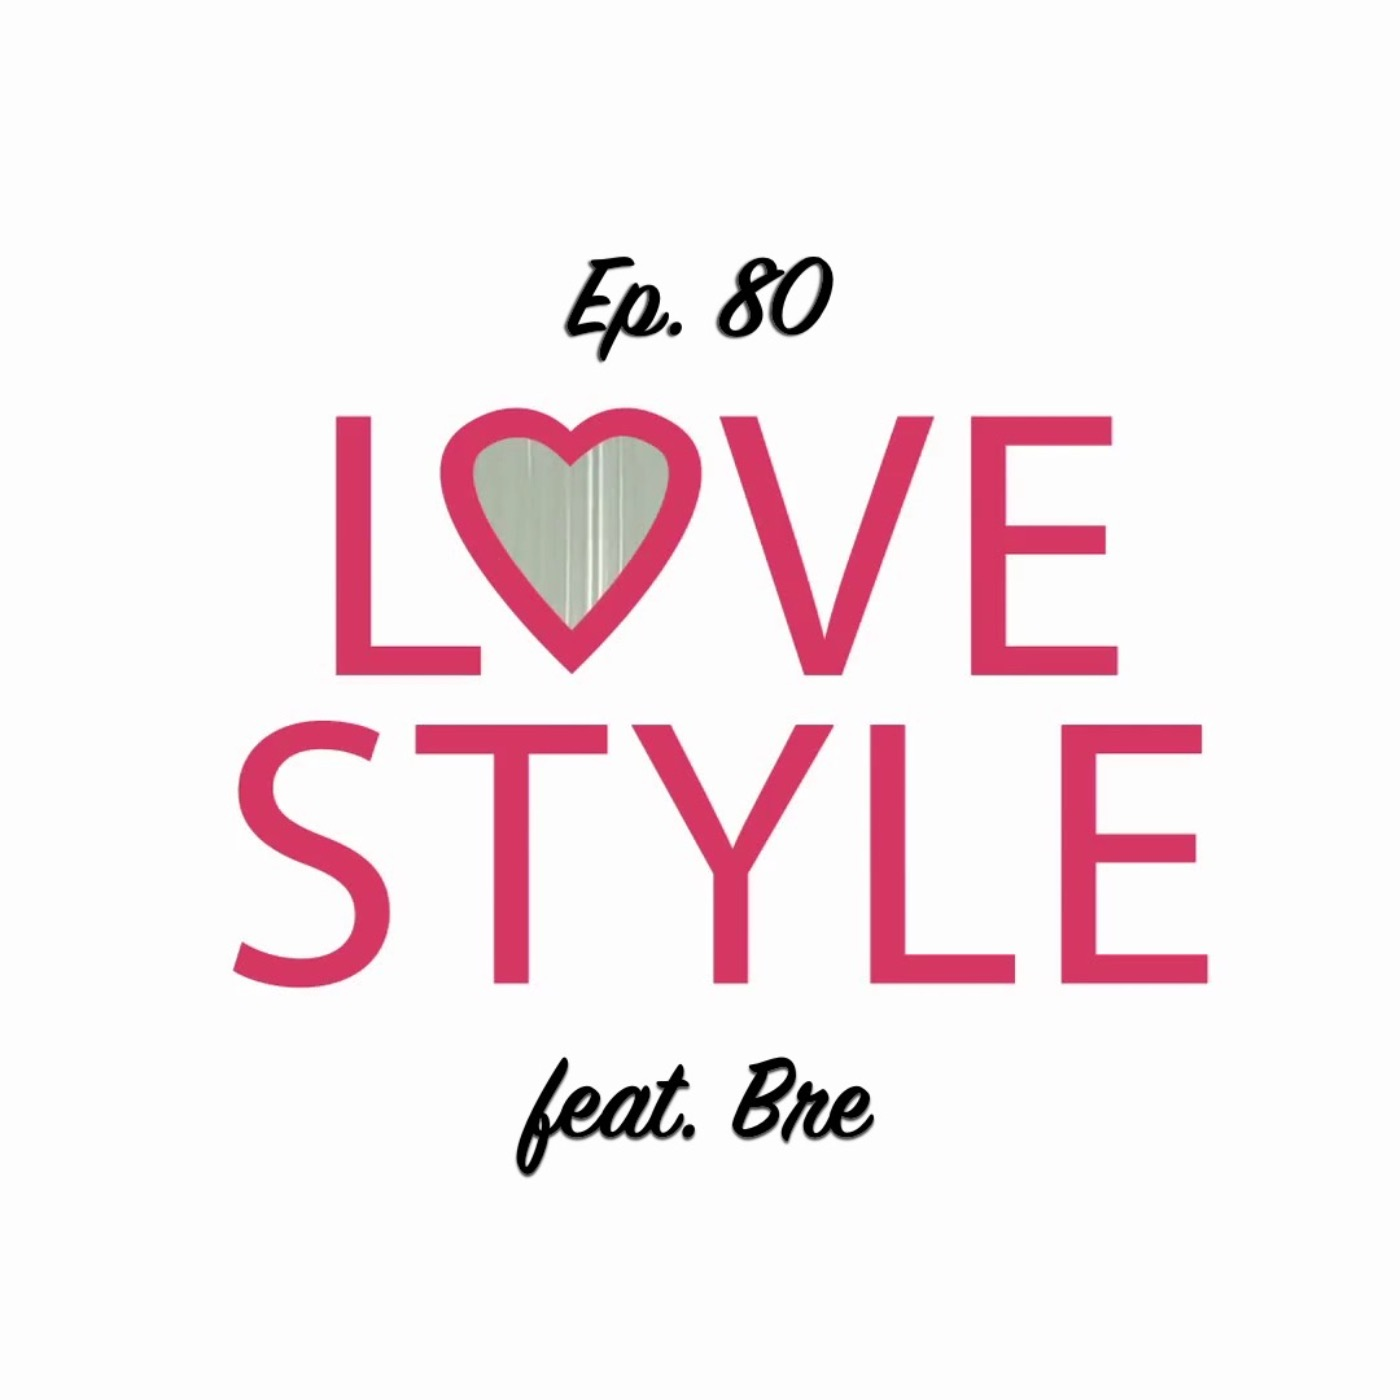 Ep. 80 - Love Style (feat. Bre of the Mama Meets World Podcast)